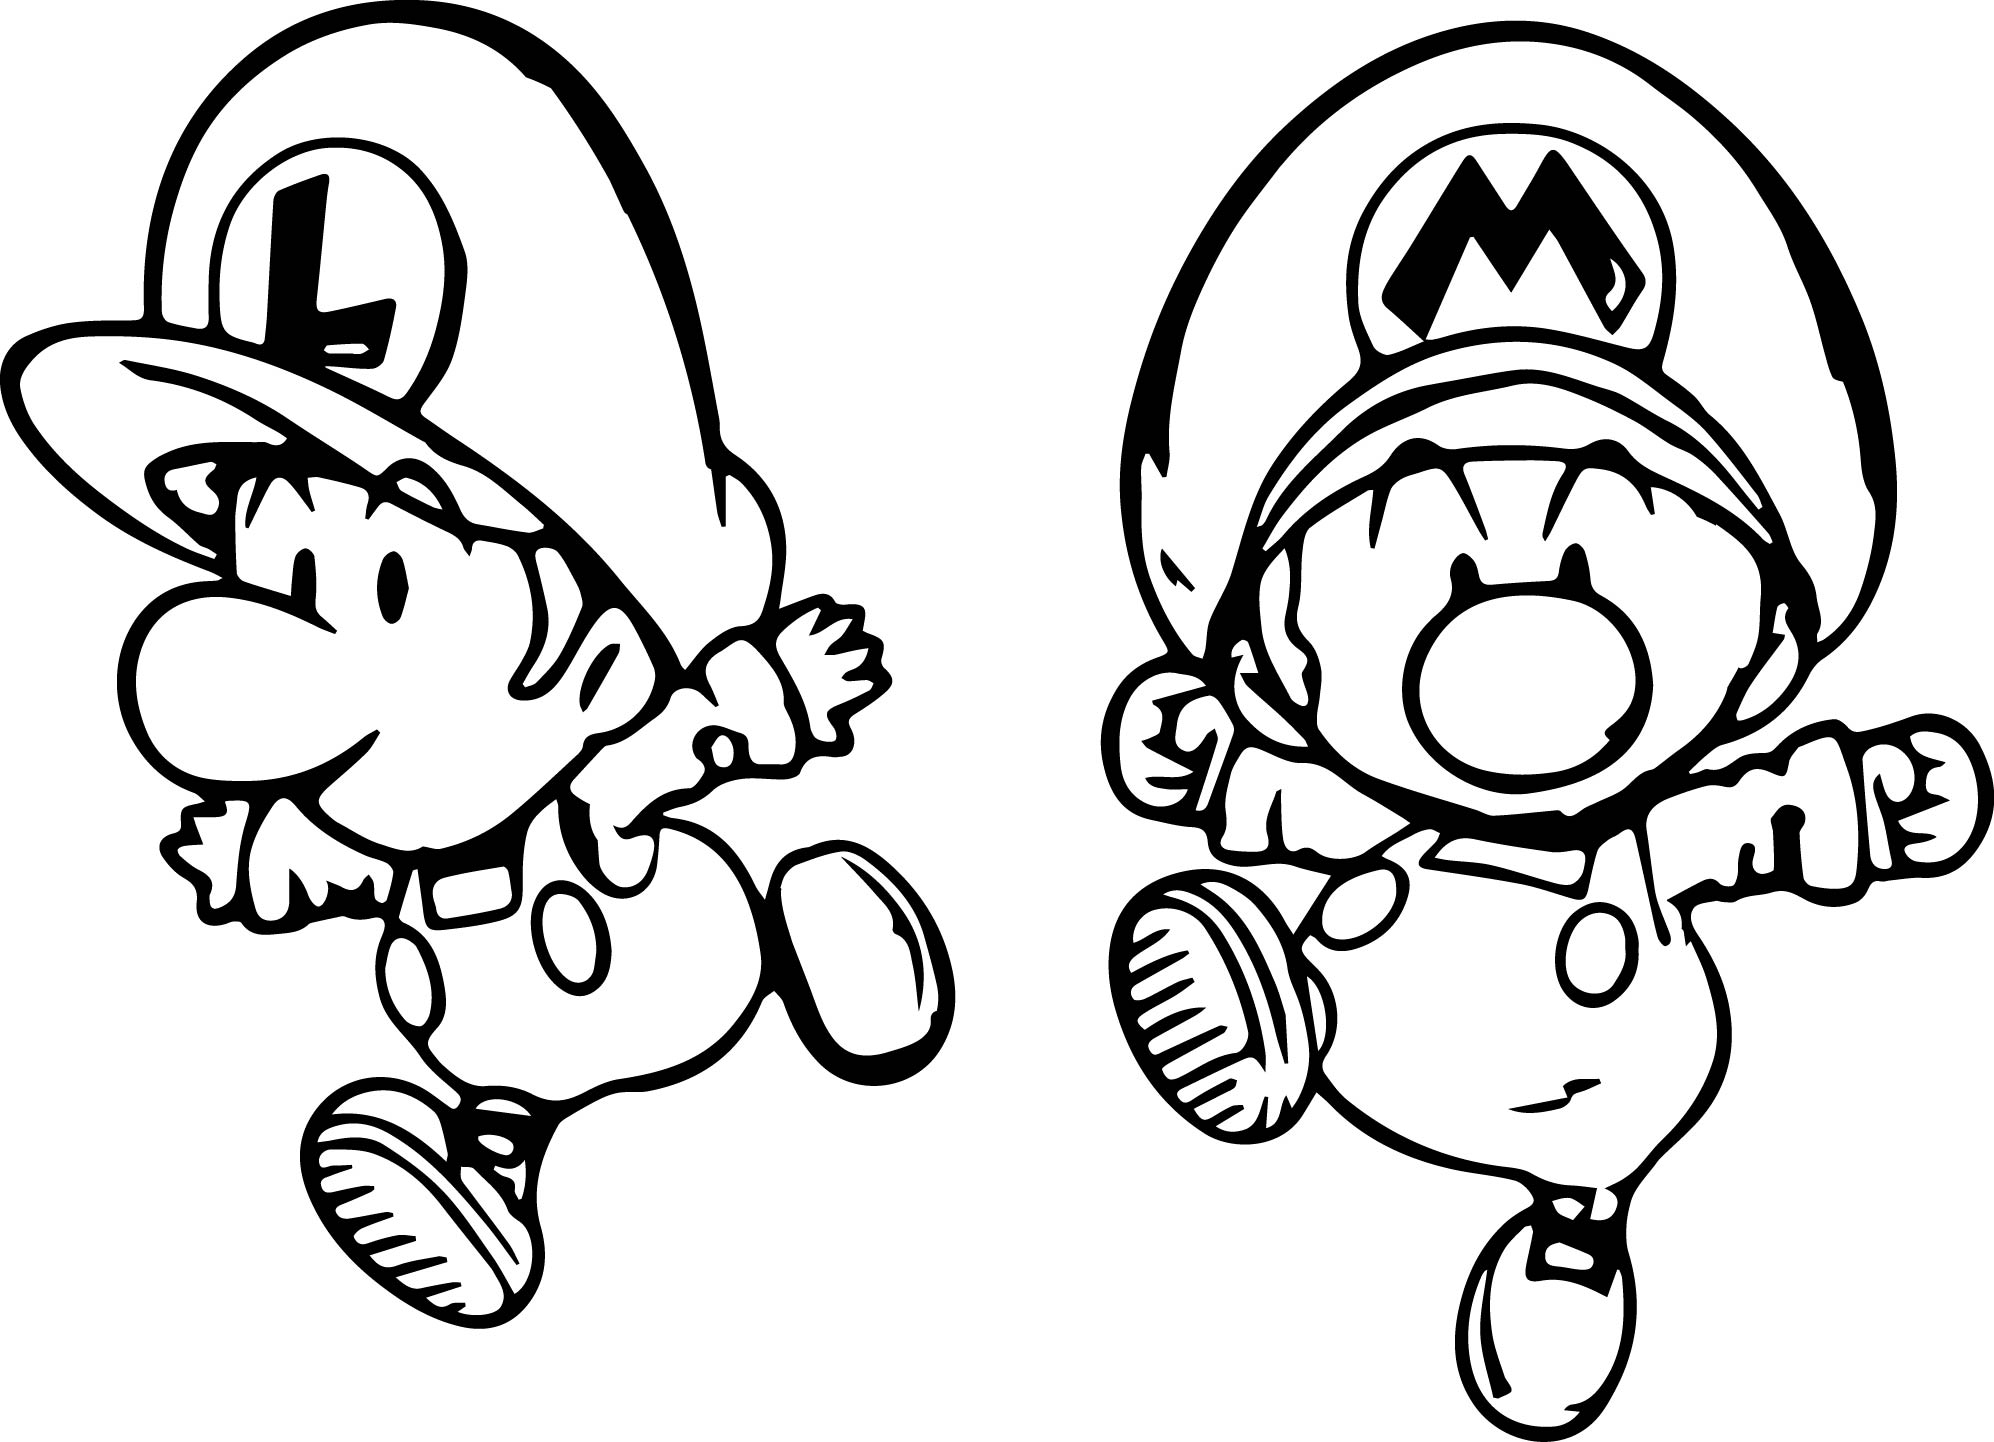 baby mario coloring pages baby mario coloring page free printable coloring pages coloring baby mario pages